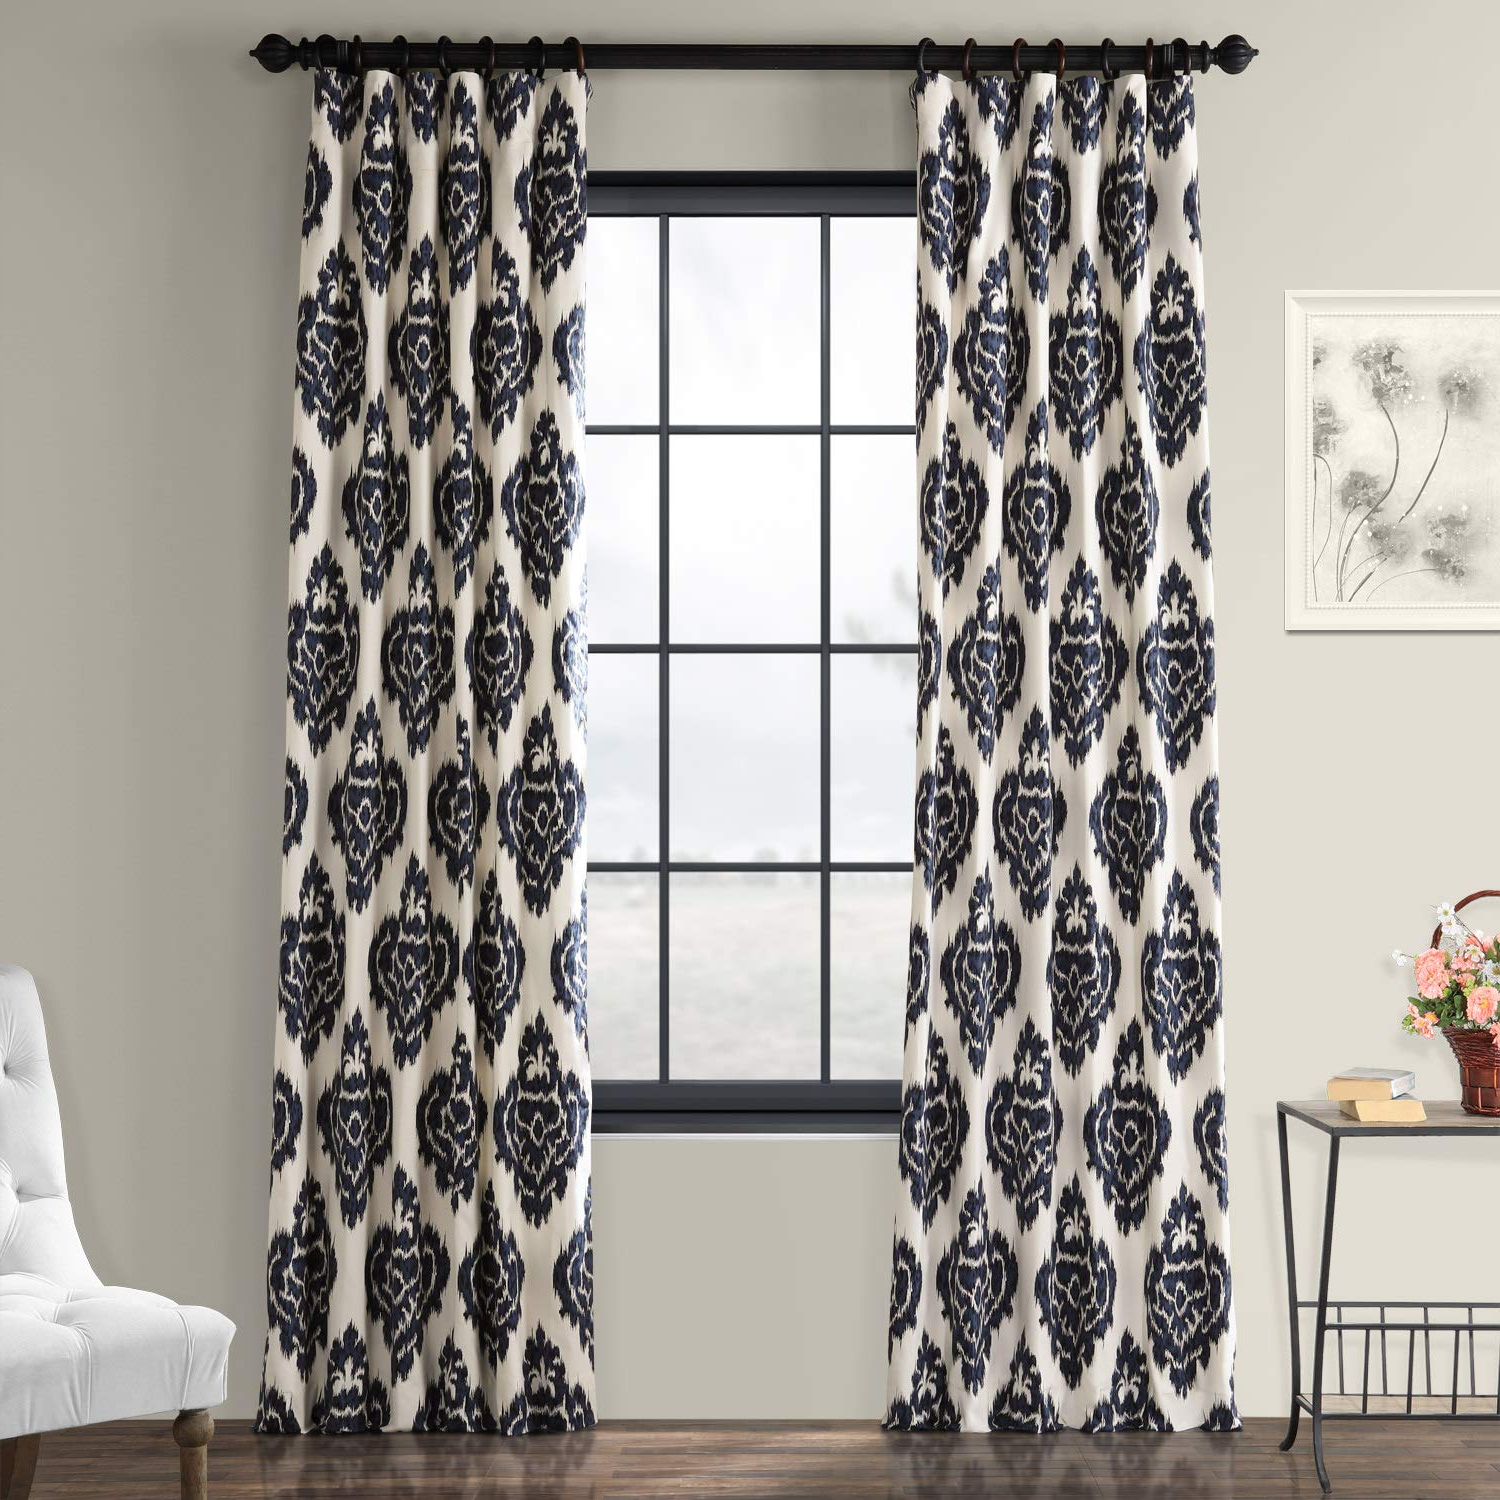 Best And Newest Ikat Blue Printed Cotton Curtain Panels Throughout Half Price Drapes Prtw D24a 84 Printed Cotton Curtain, Ikat Blue (View 9 of 20)